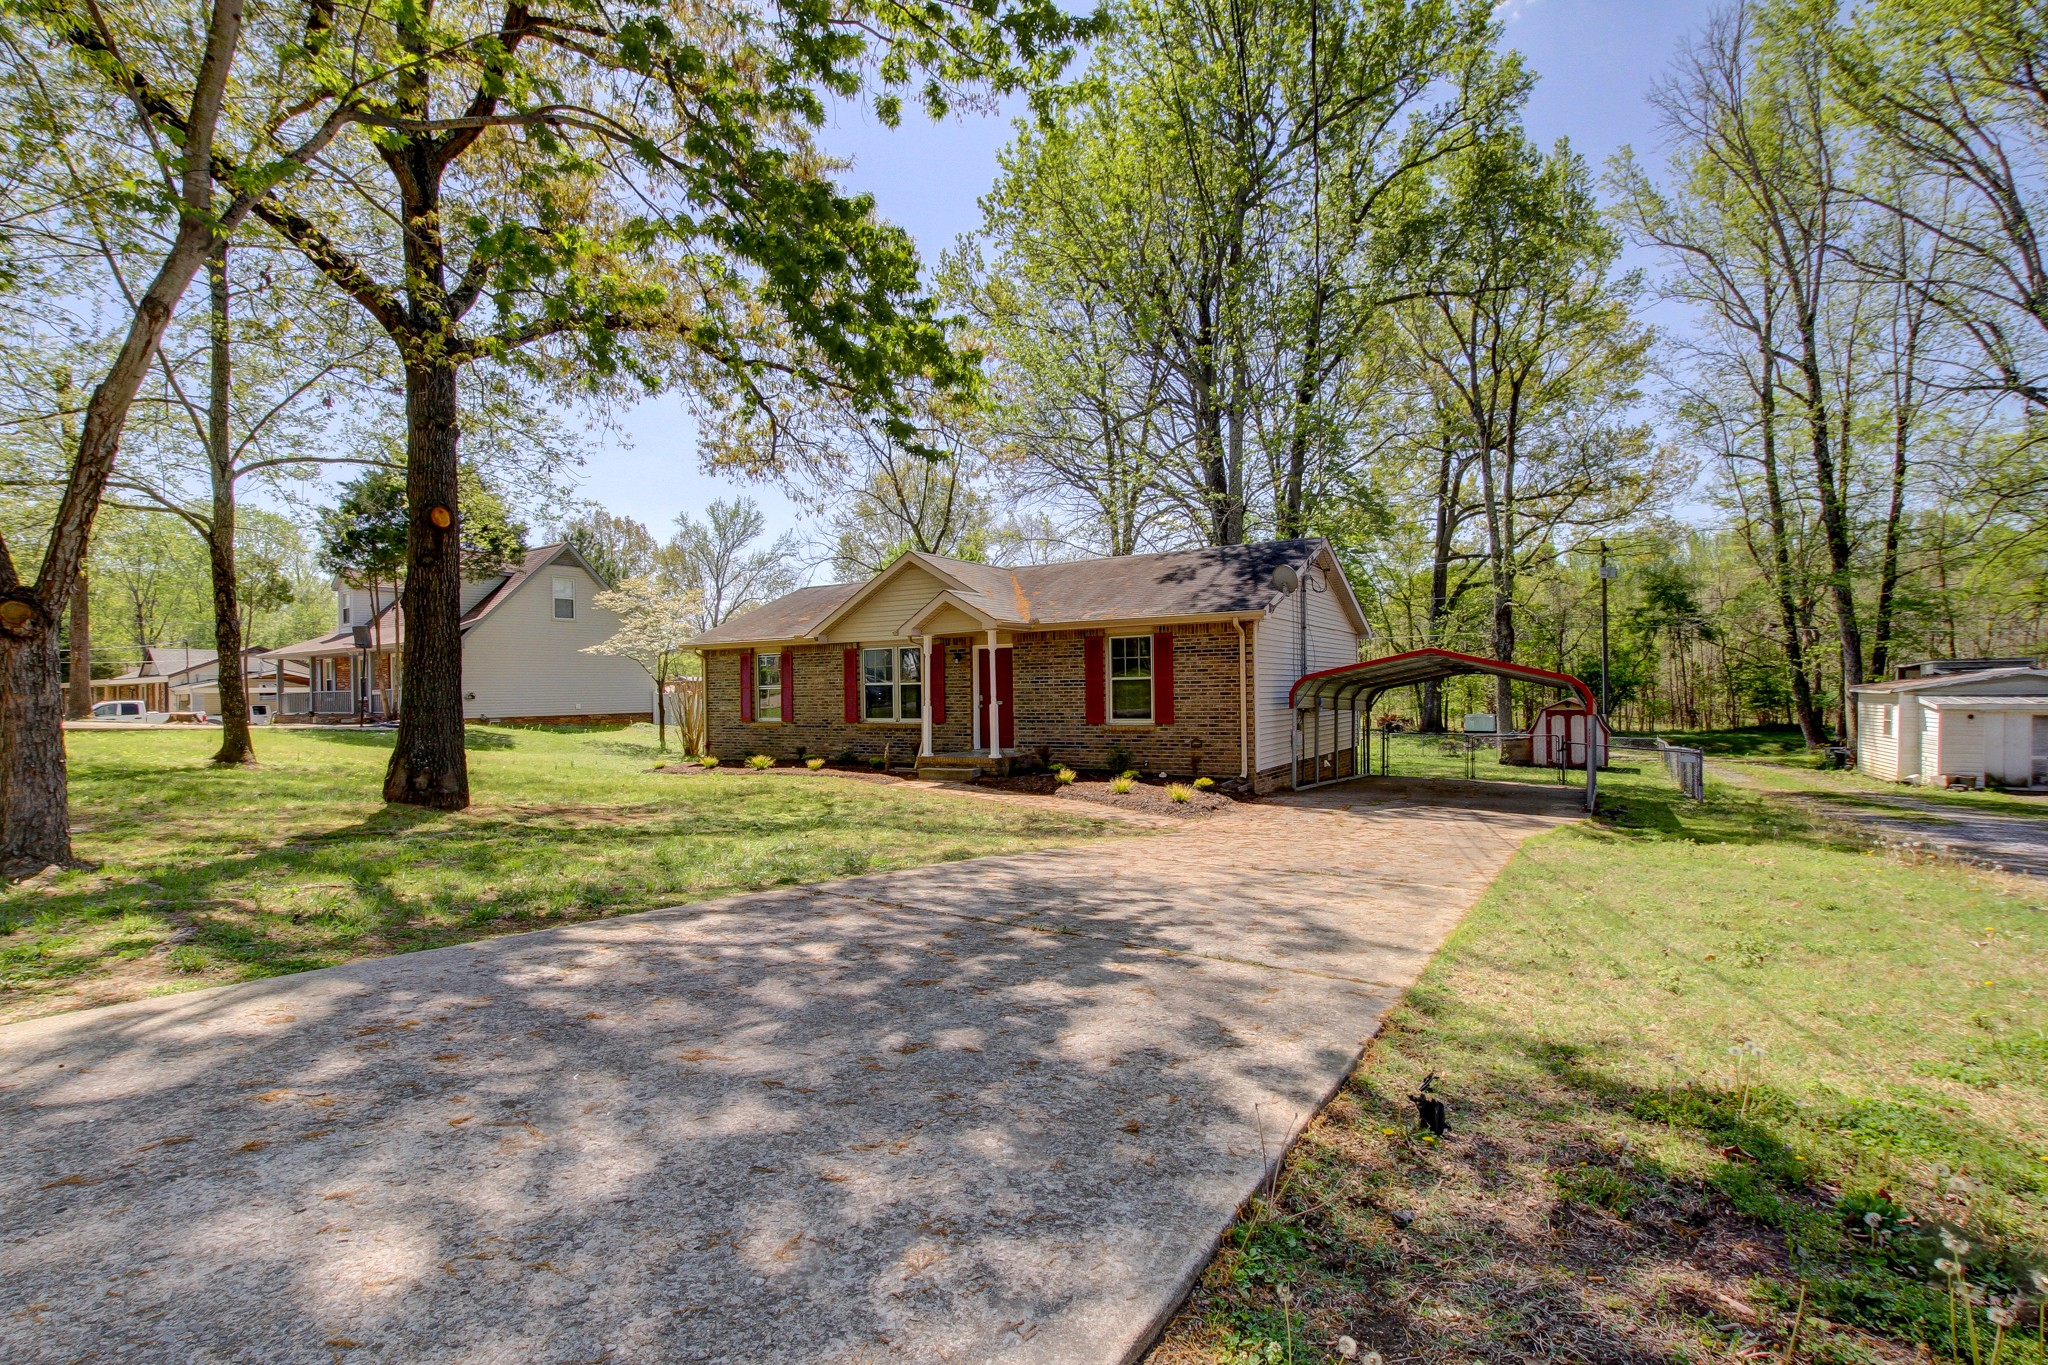 518 Mallory Dr Property Photo - Clarksville, TN real estate listing